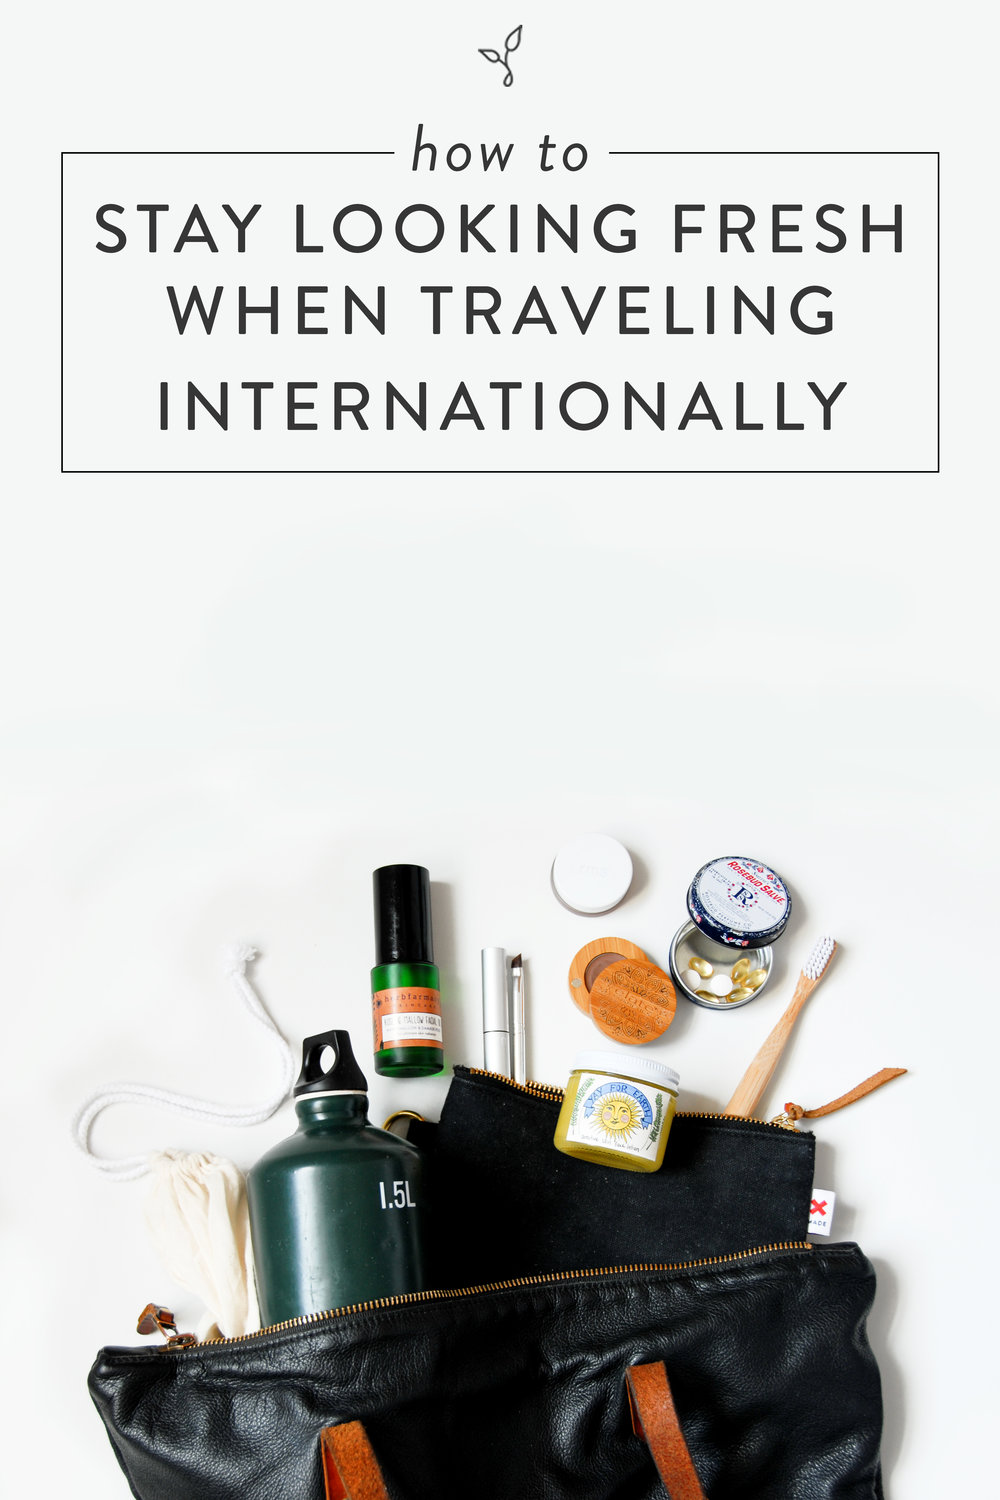 How to Stay Looking Fresh When Traveling Internationally